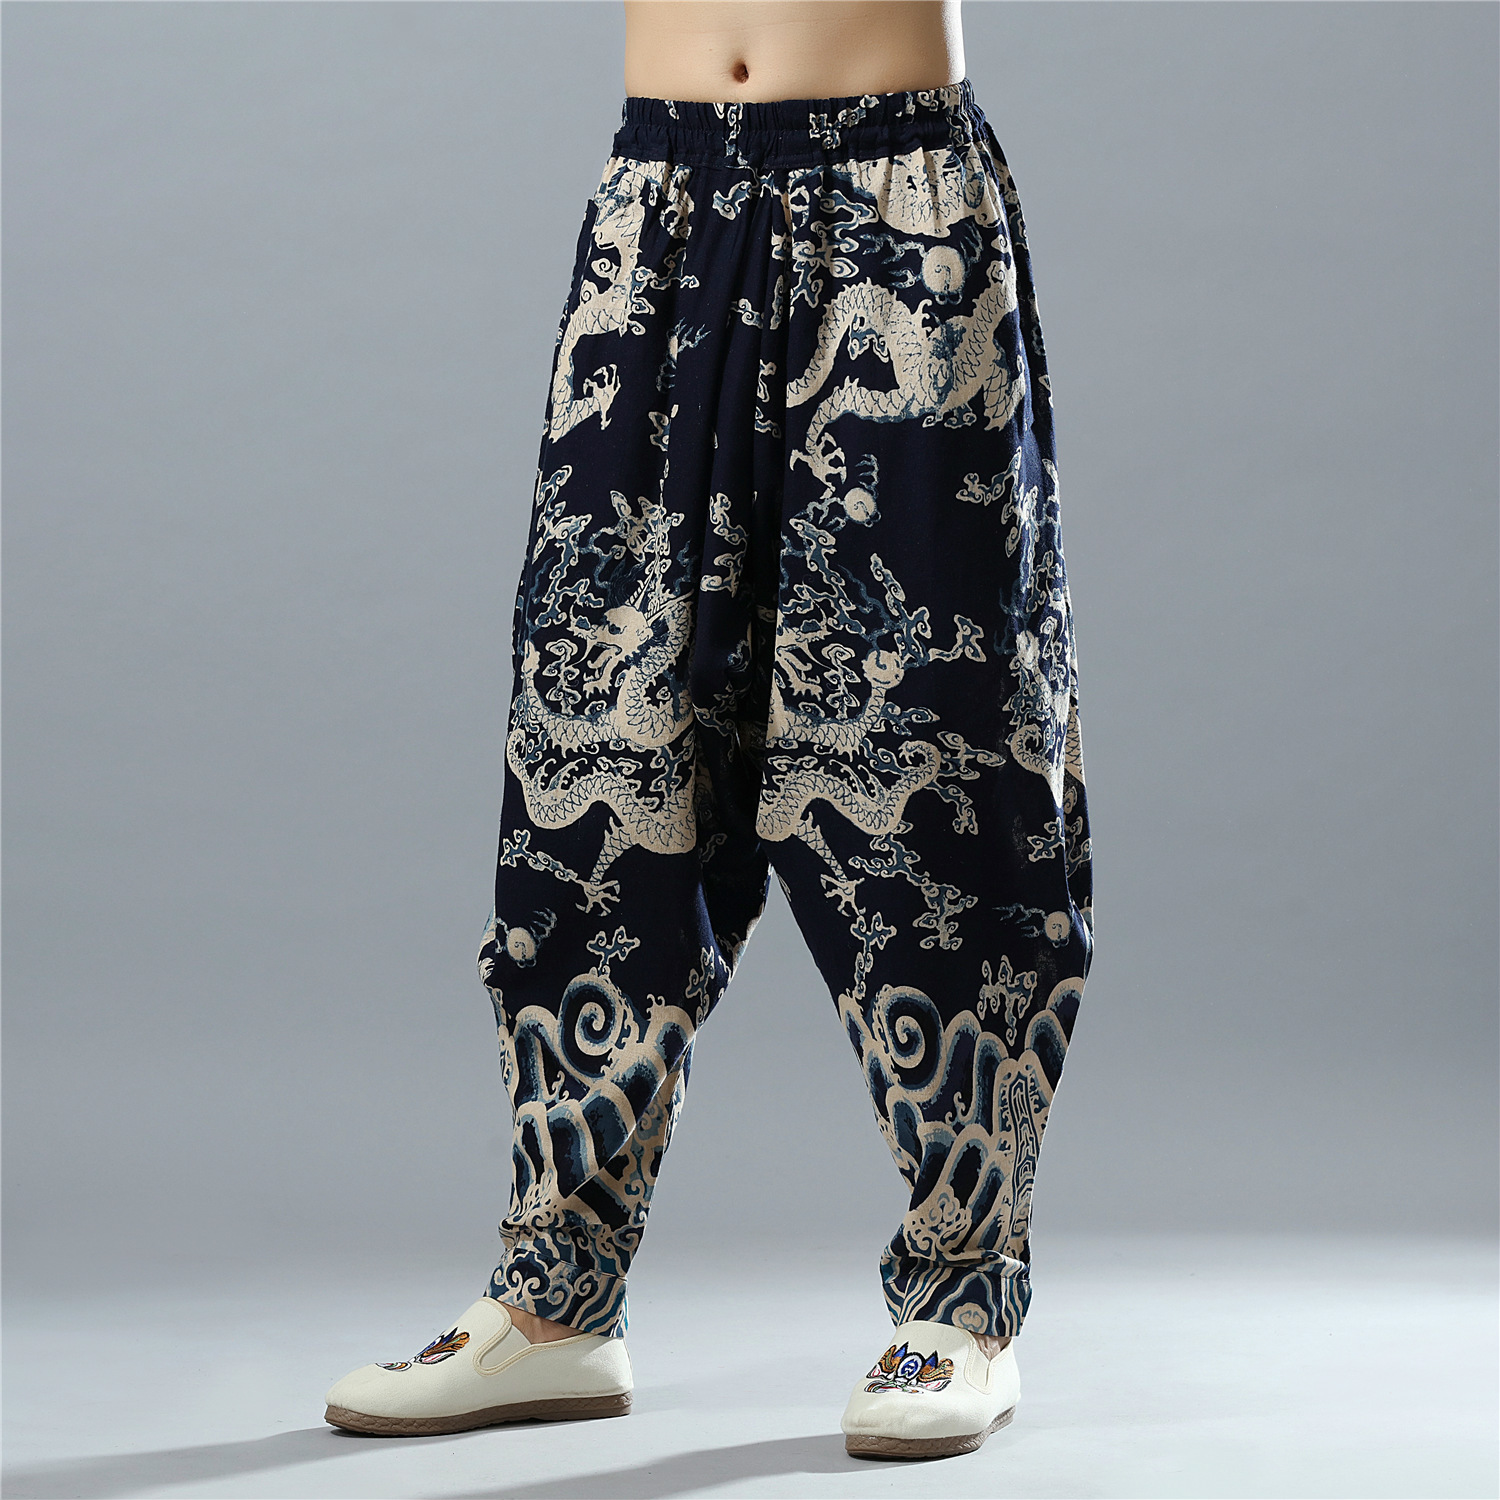 2019 New Style Ethnic-Style Men's Trousers Casual Chinese-style Printed Saggy Pants Arc Pants Loose And Comfortable